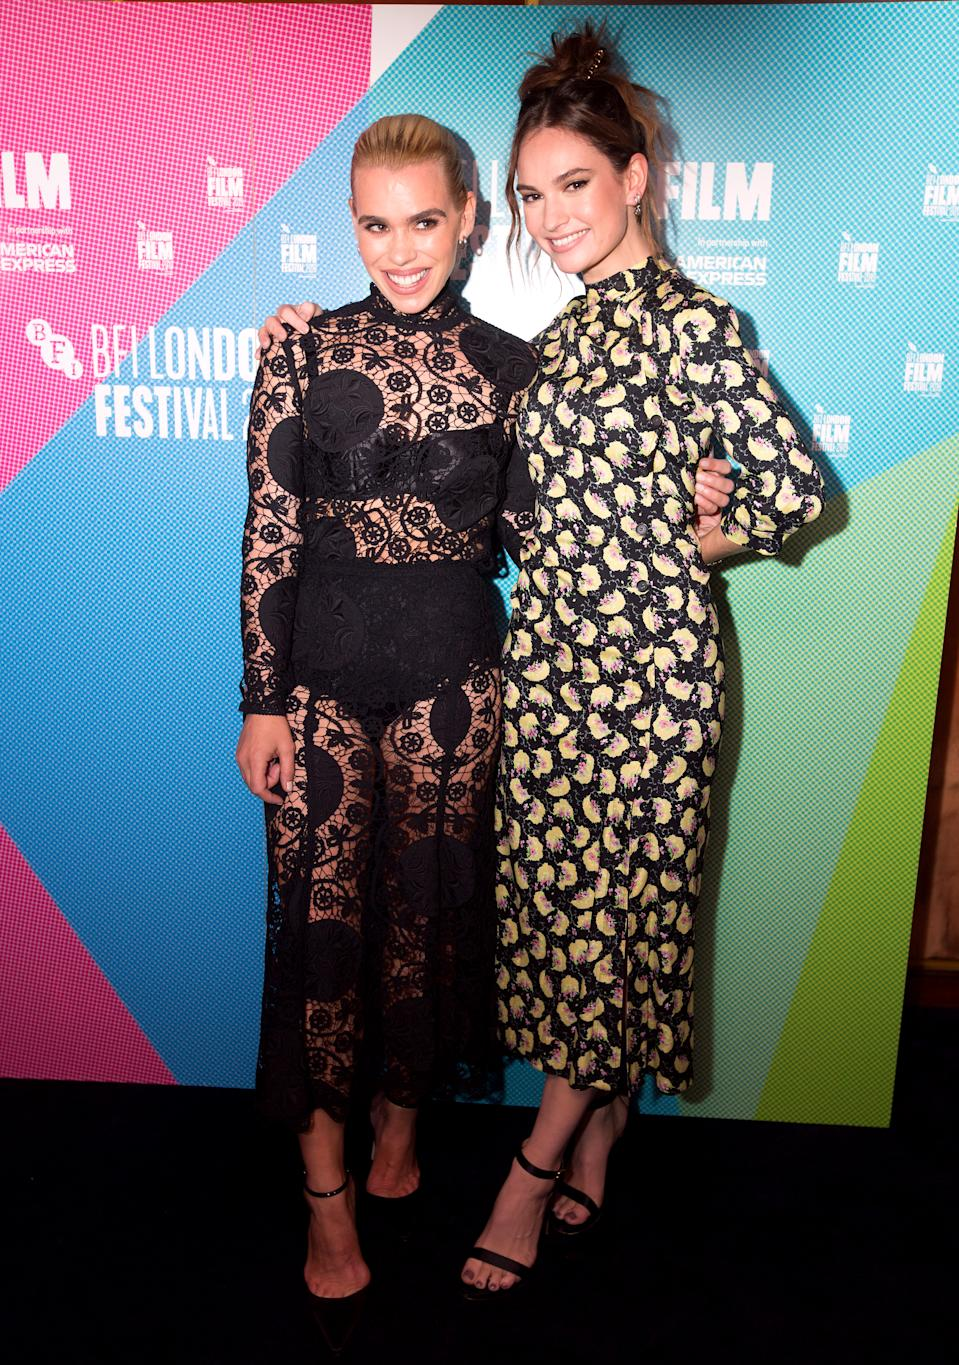 Billie Piper (left) and Lily James attending the Rare Beasts Premiere as part of the BFI London Film Festival 2019 held at the Curzon Mayfair, London. (Photo by David Parry/PA Images via Getty Images)